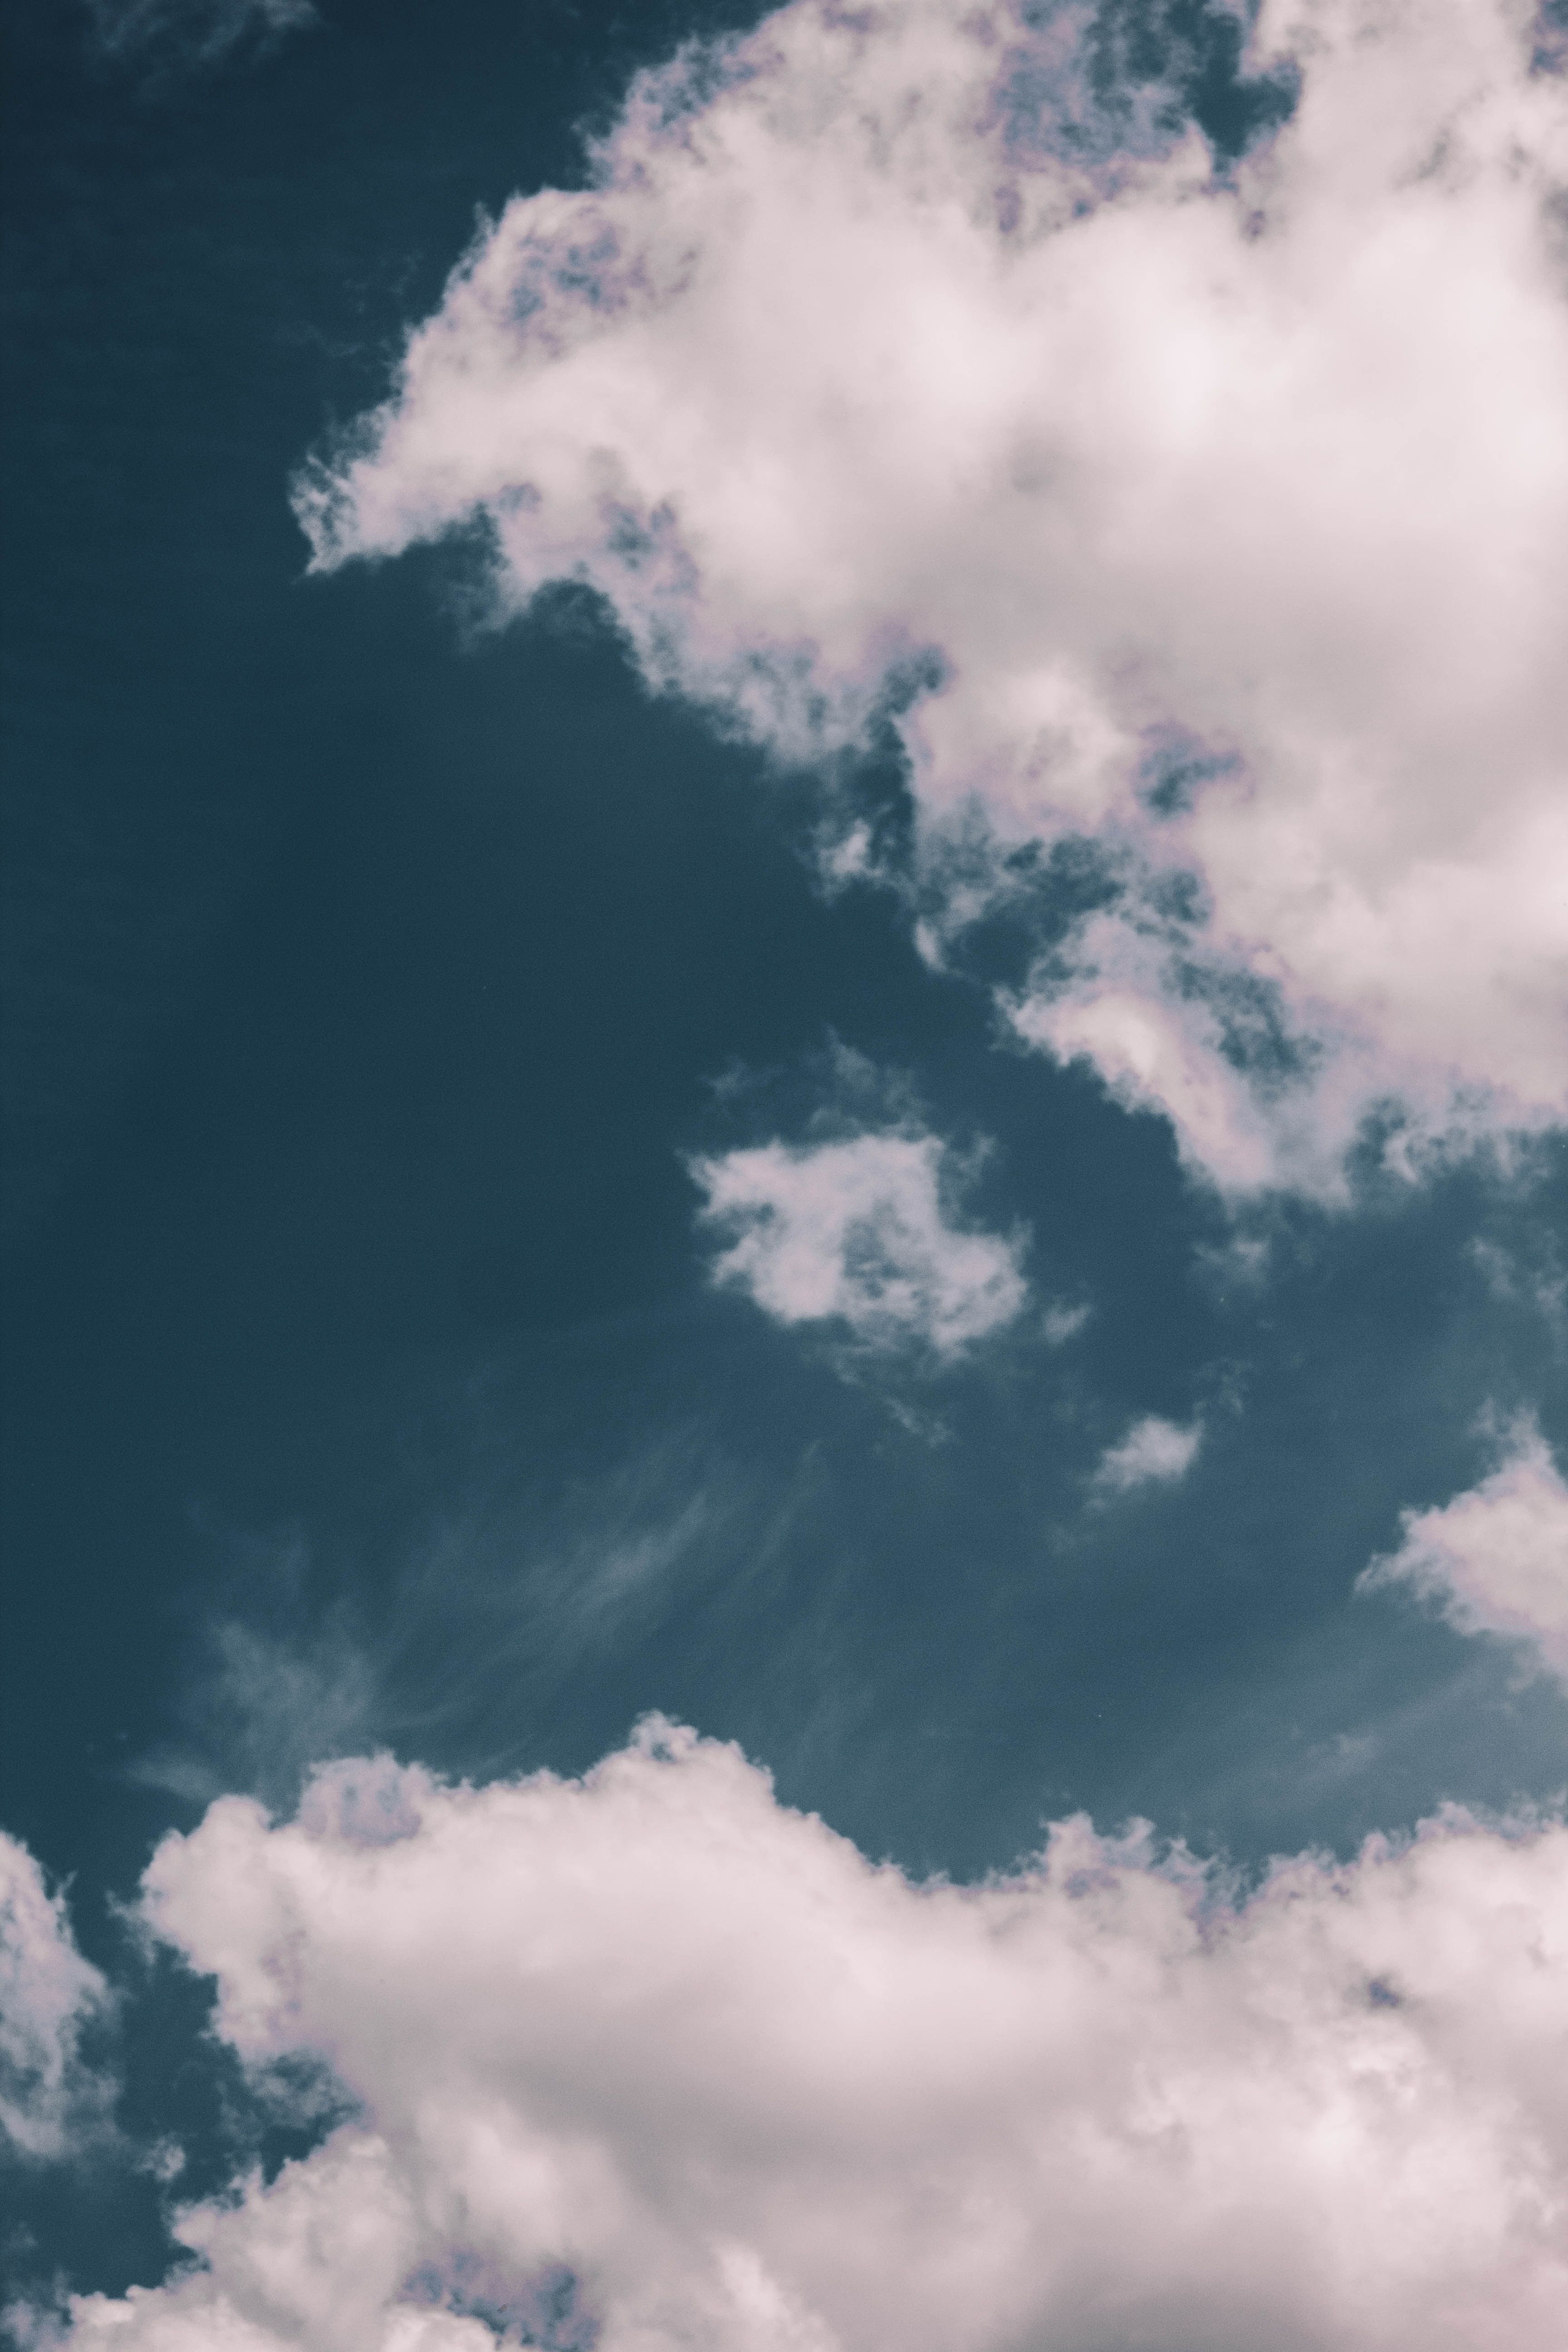 Pin By Maria Martinez Sastre On Oboi Sky Aesthetic Blue Wallpaper Iphone Scenery